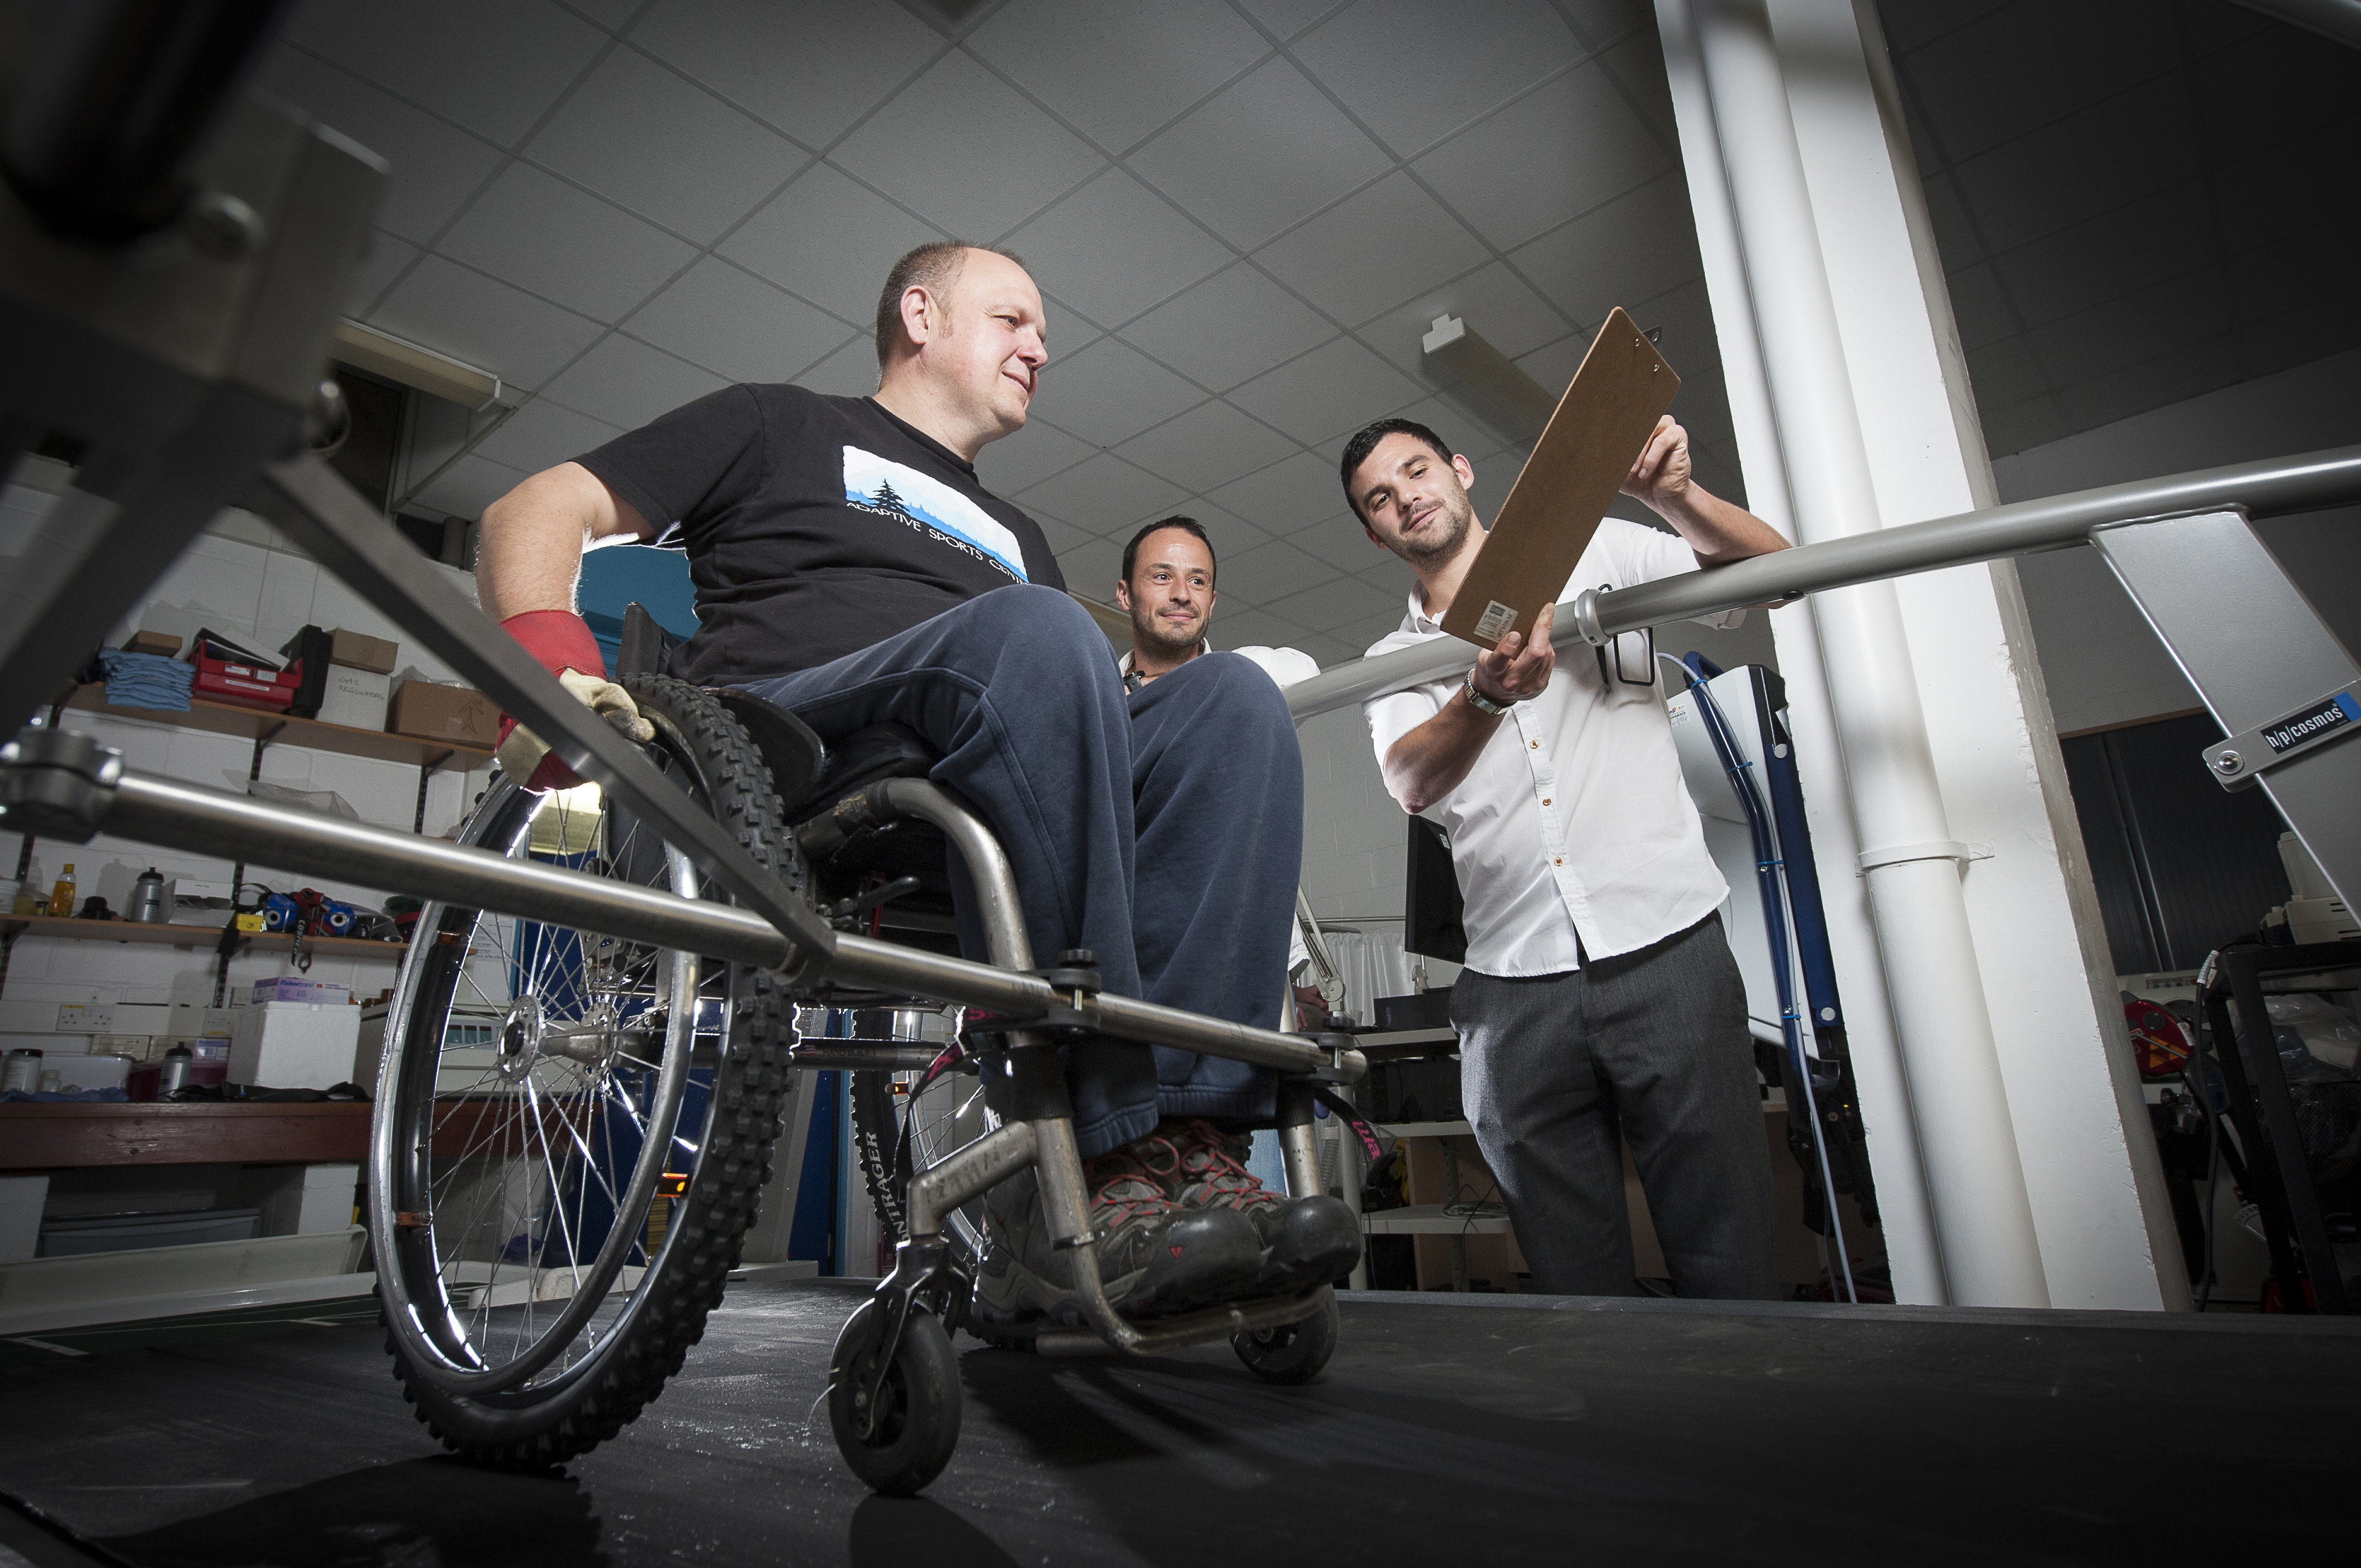 Encouraging wheelchair users to become more physically active